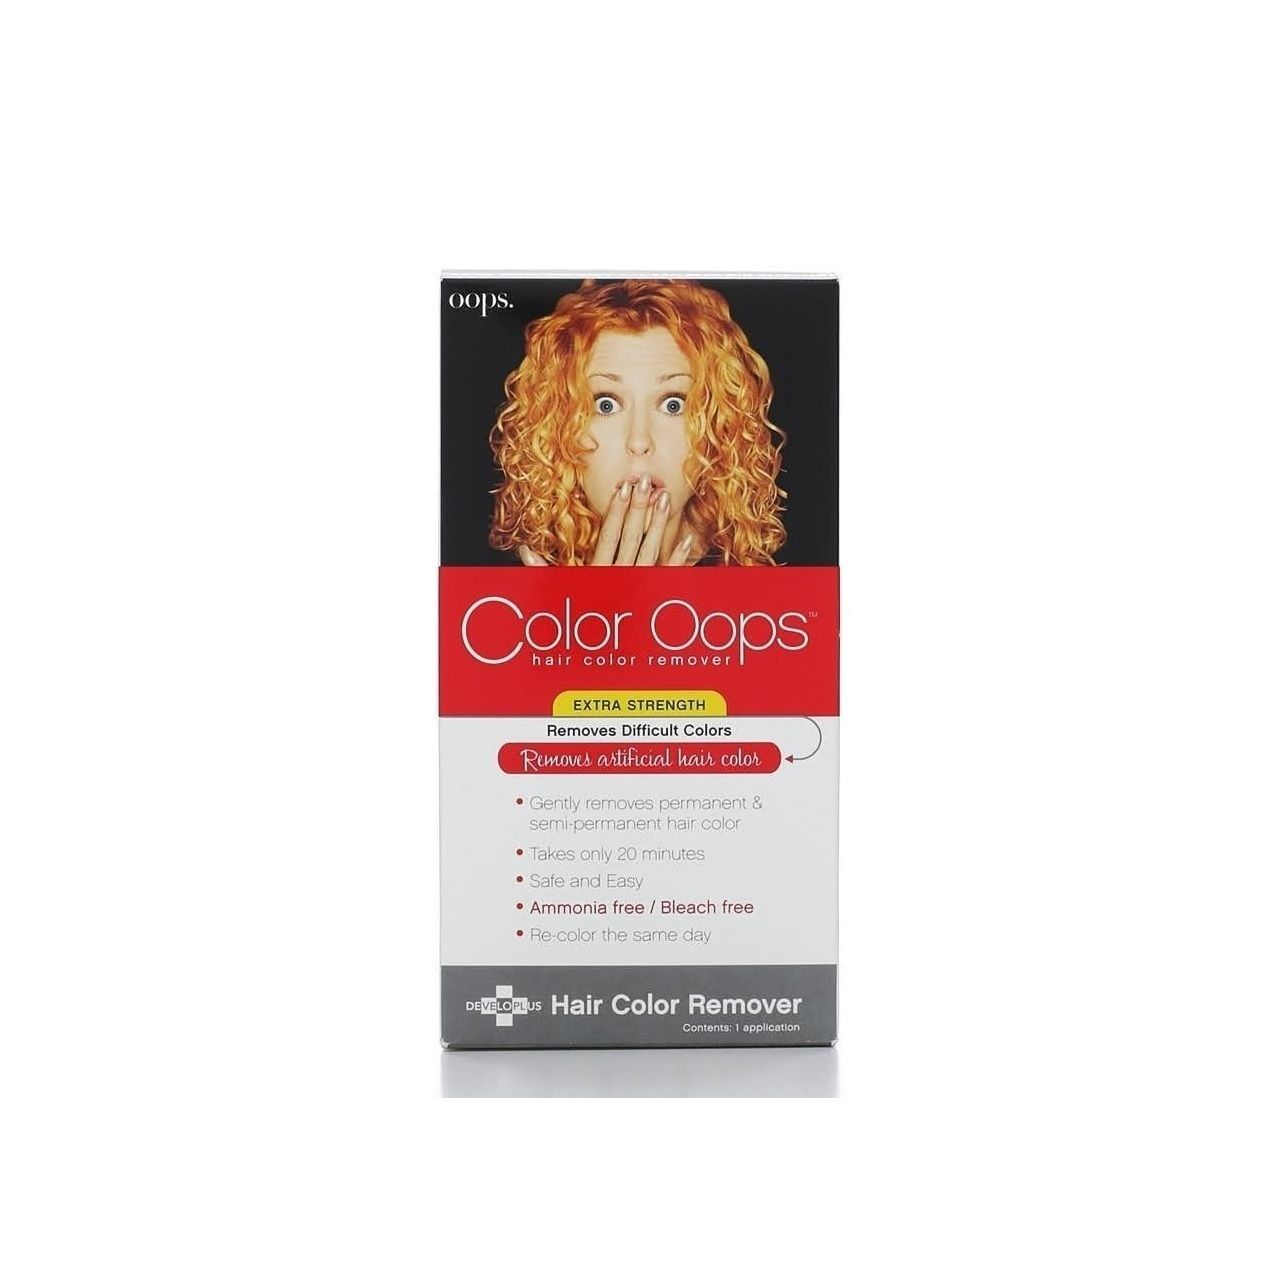 Color Oops Extra Strength Hair Color Remover Products Pinterest